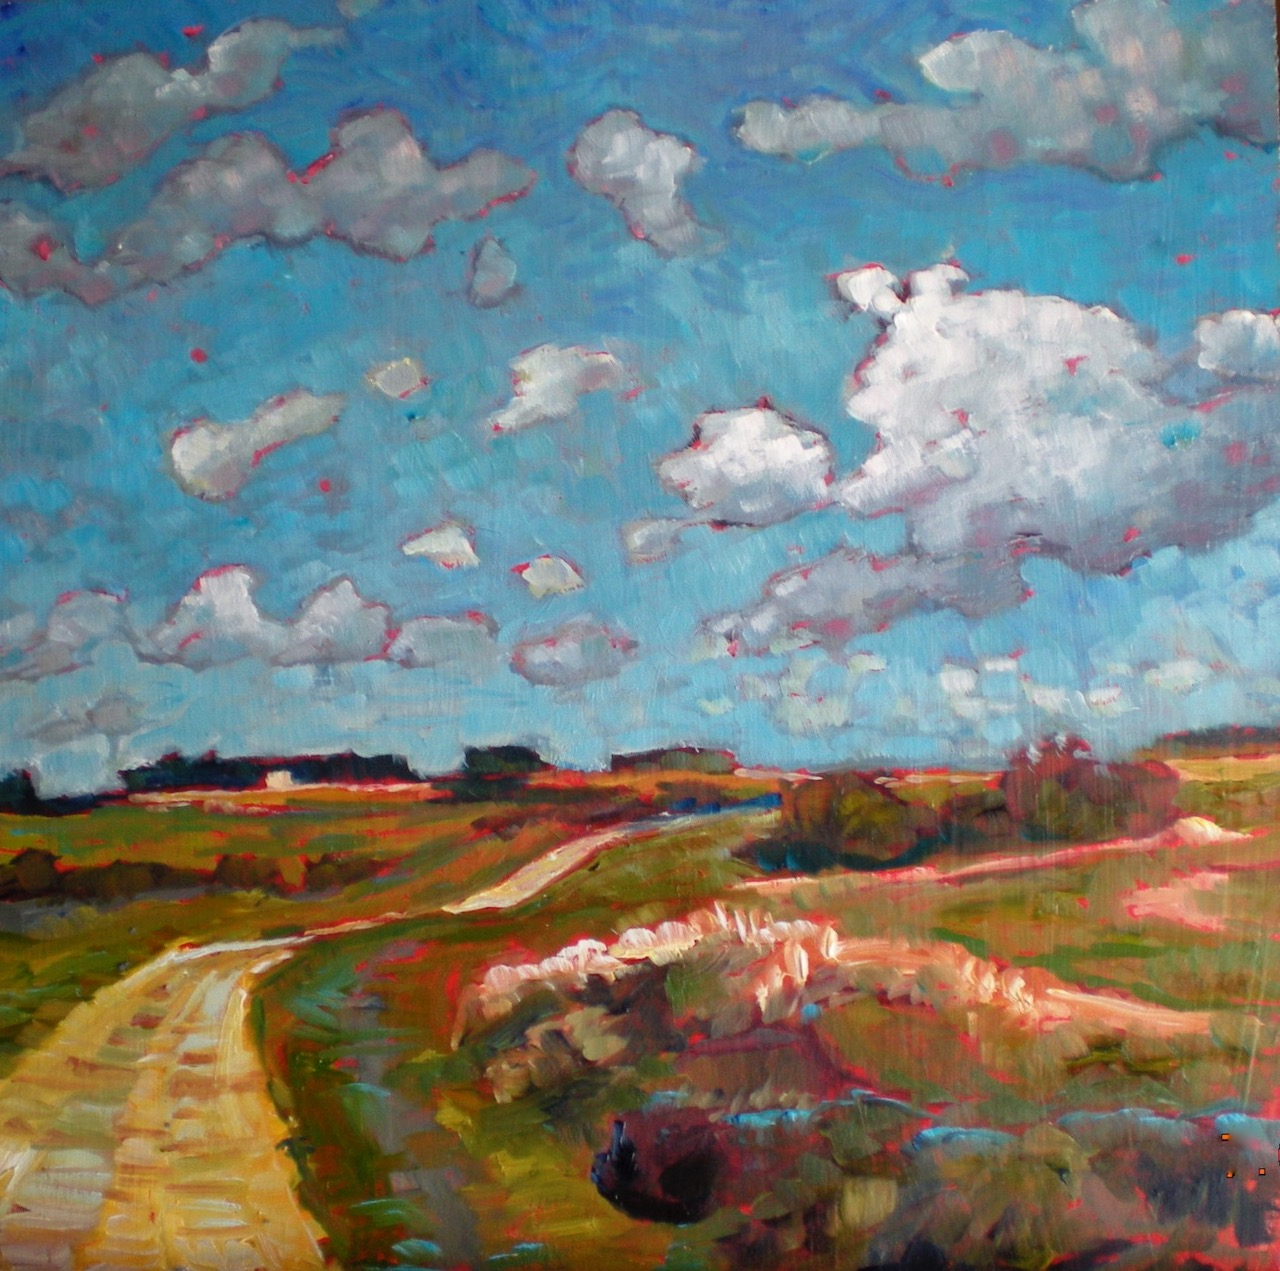 Road to John's House (sold)